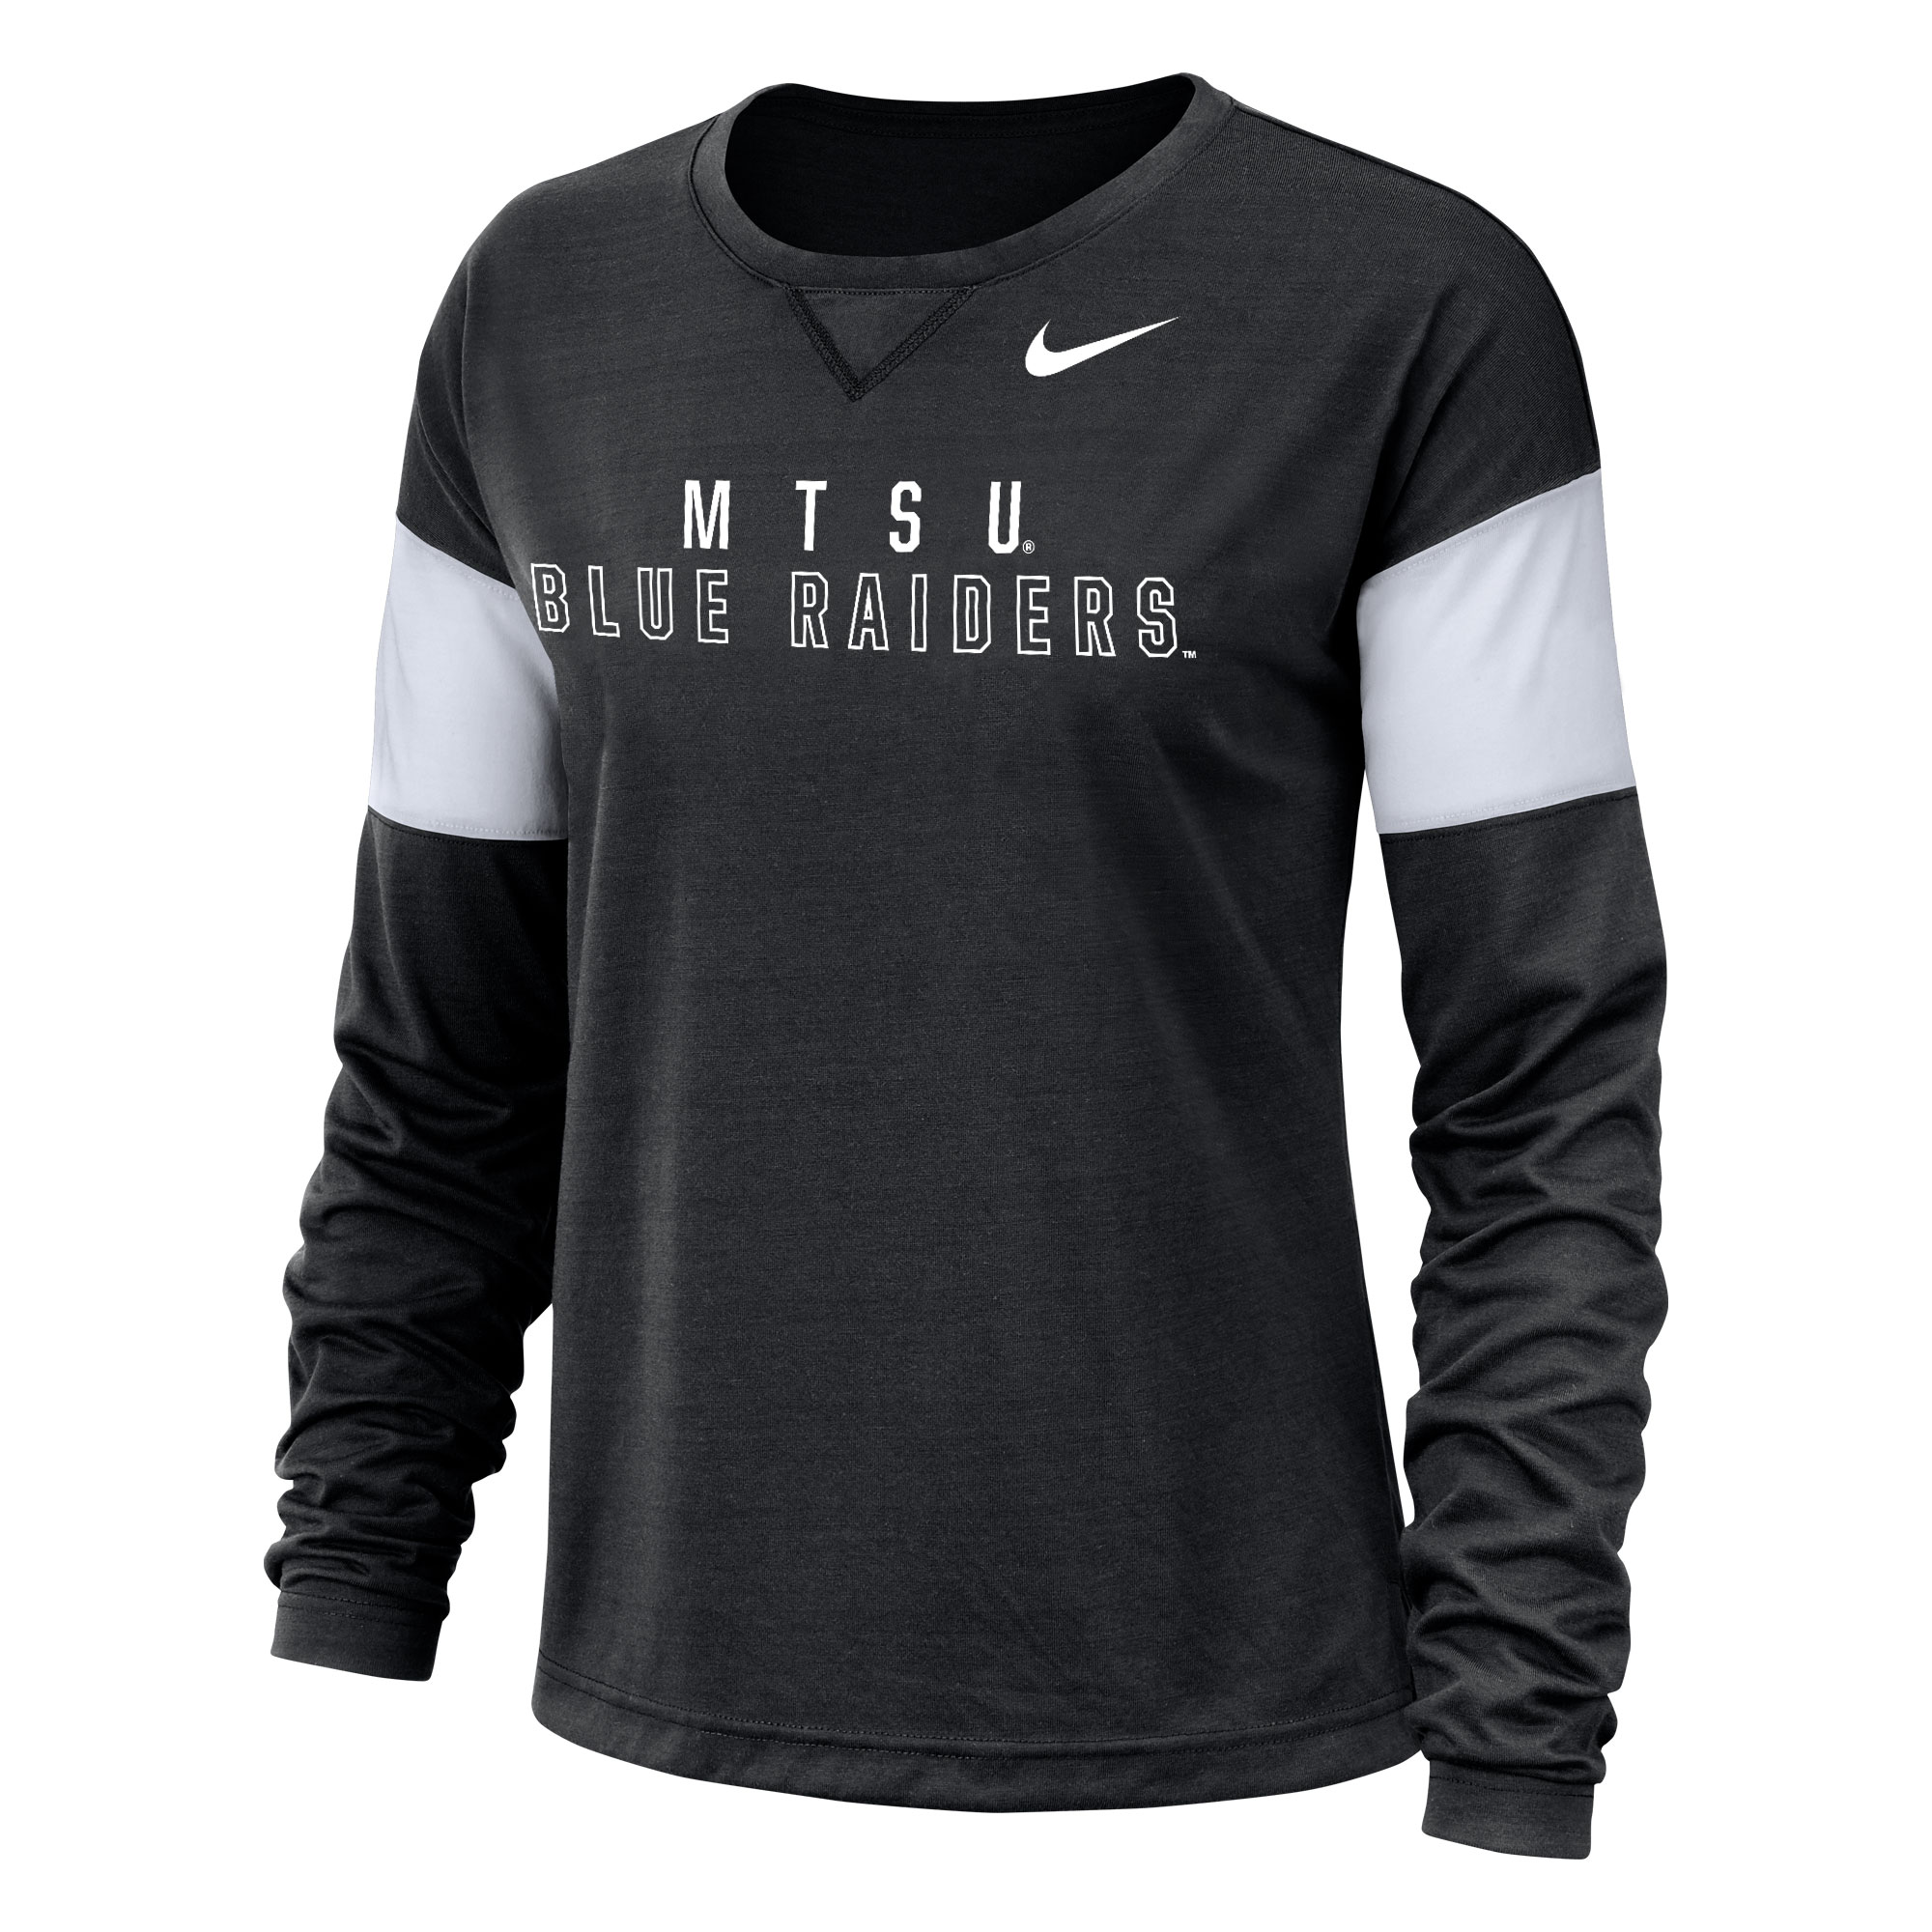 MTSU Blue Raiders Women's Nike® LS Breathe Top